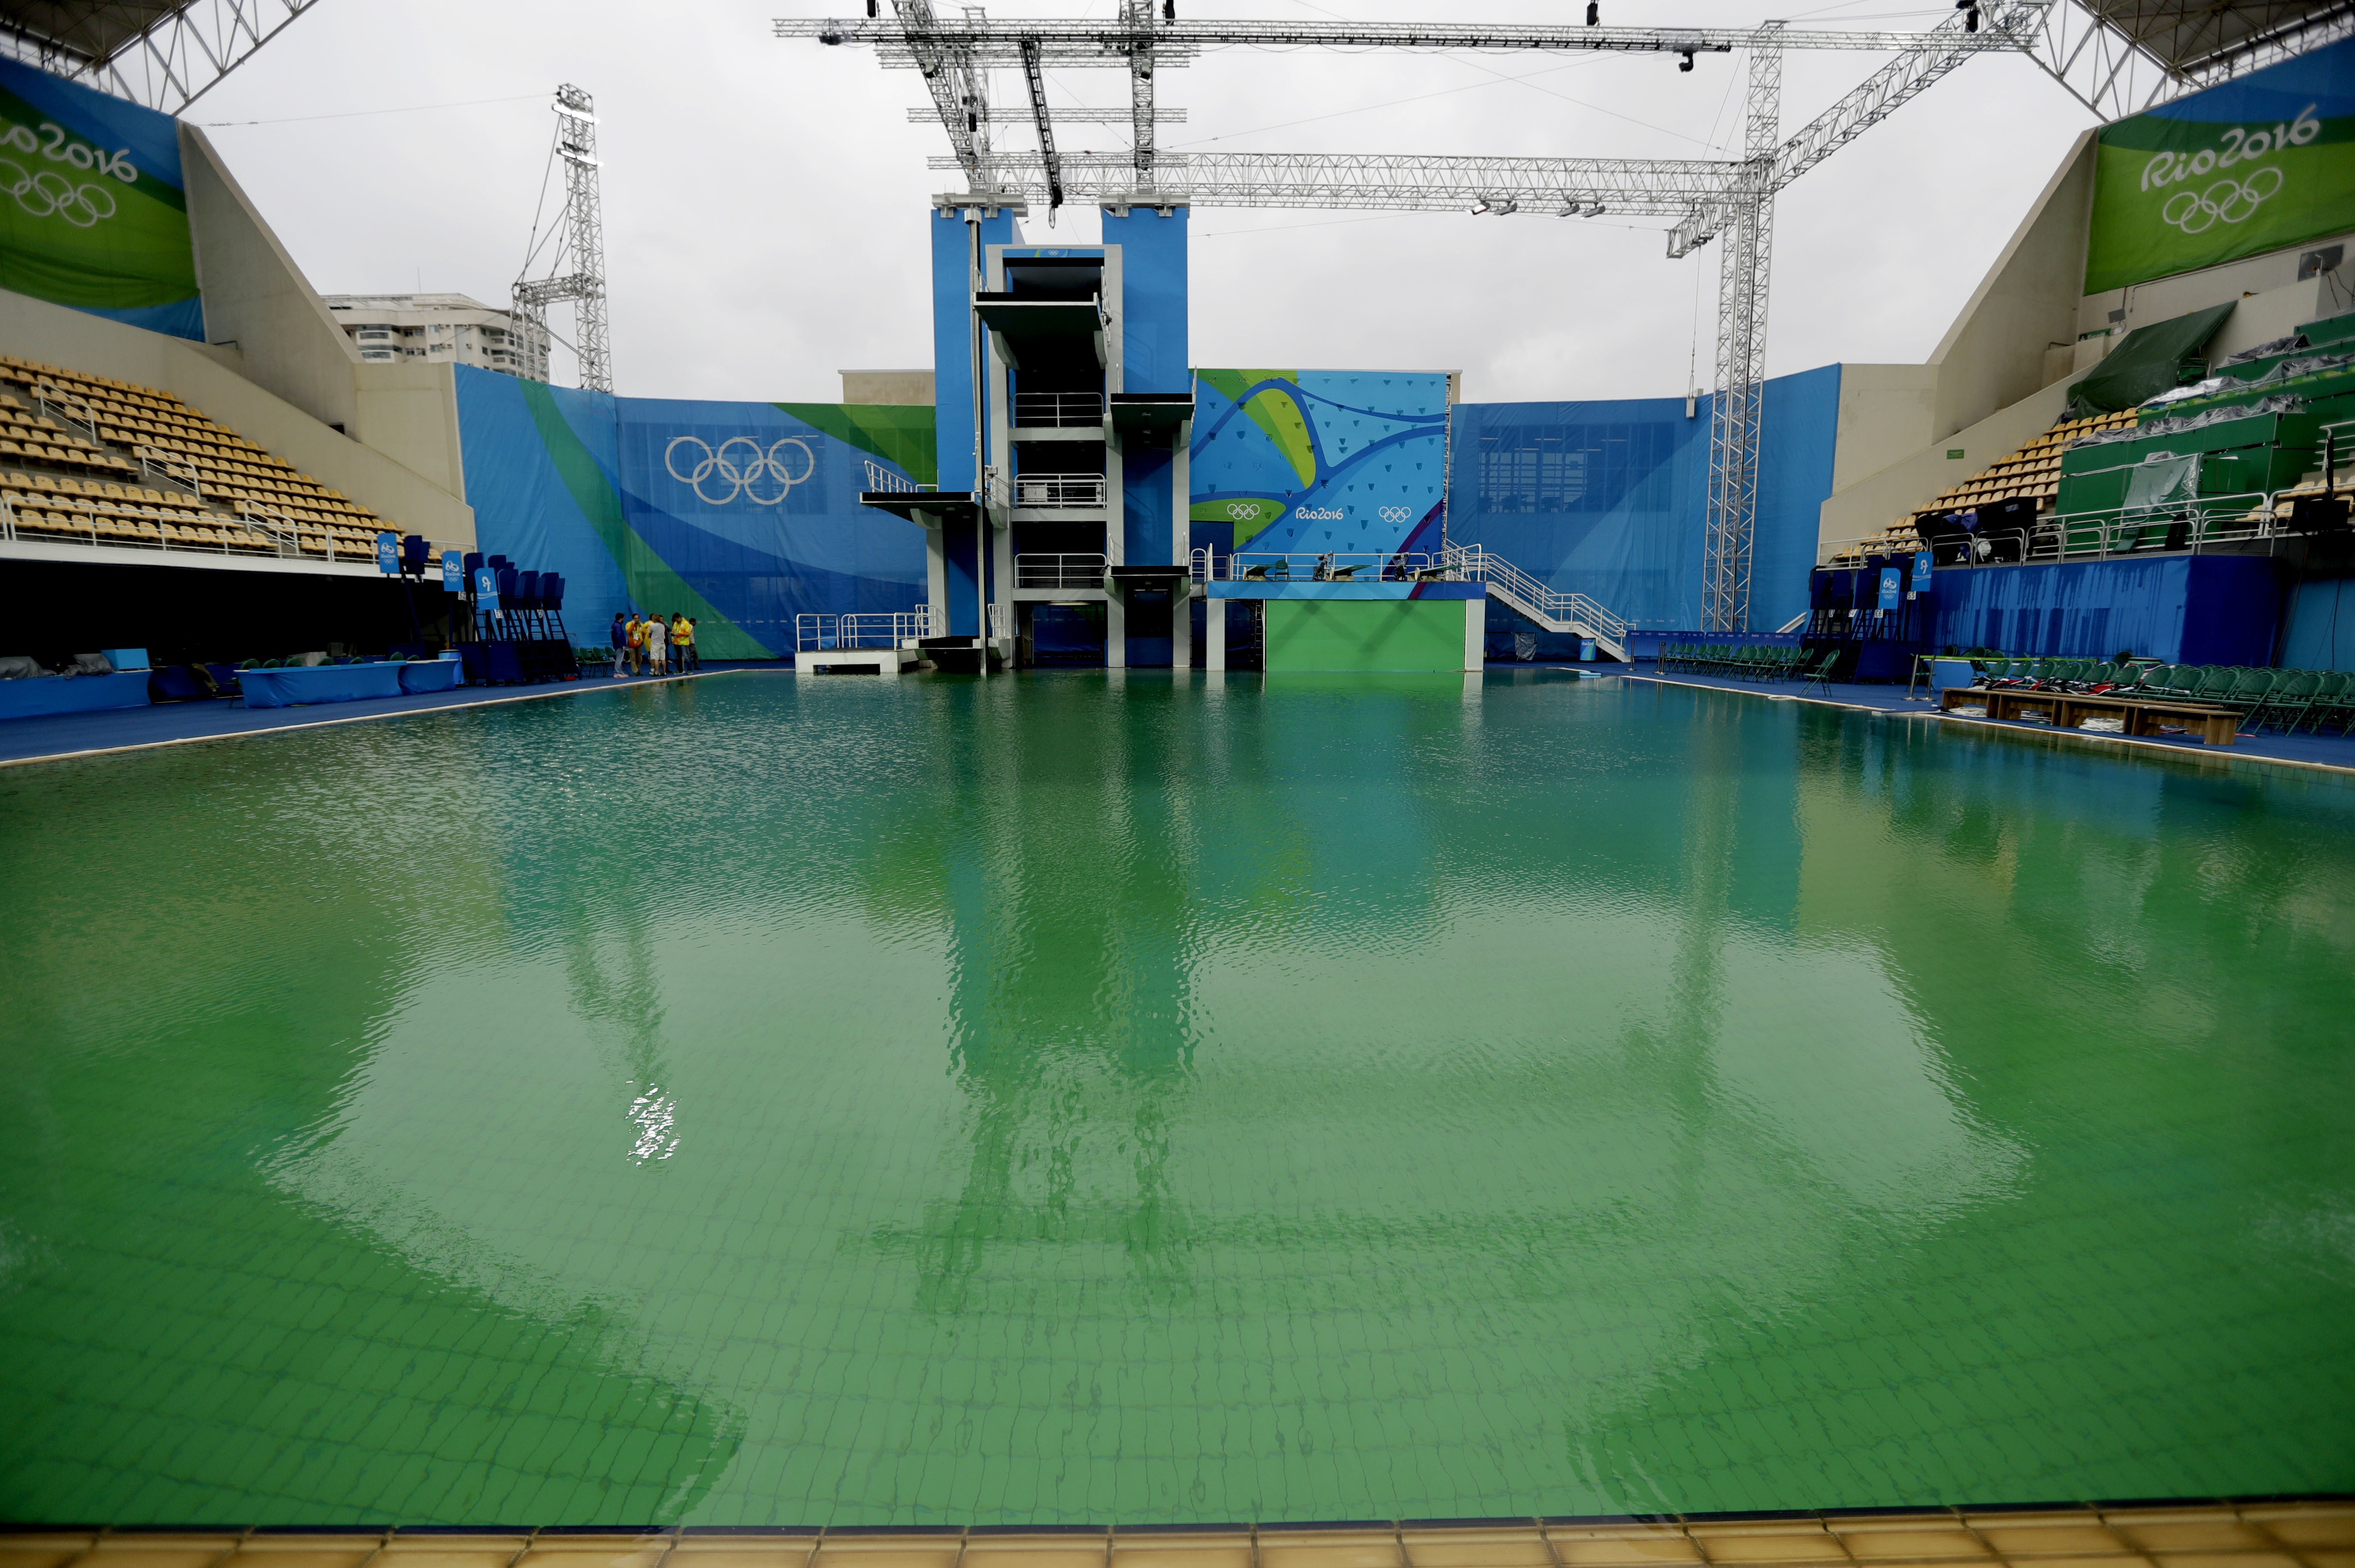 The water of the diving pool appears a murky green in the Maria Lenk Aquatic Center at the 2016 Summer Olympics in Rio de Janeiro, Brazil, Wednesday, Aug. 10, 2016. (AP Photo/Matt Dunham)